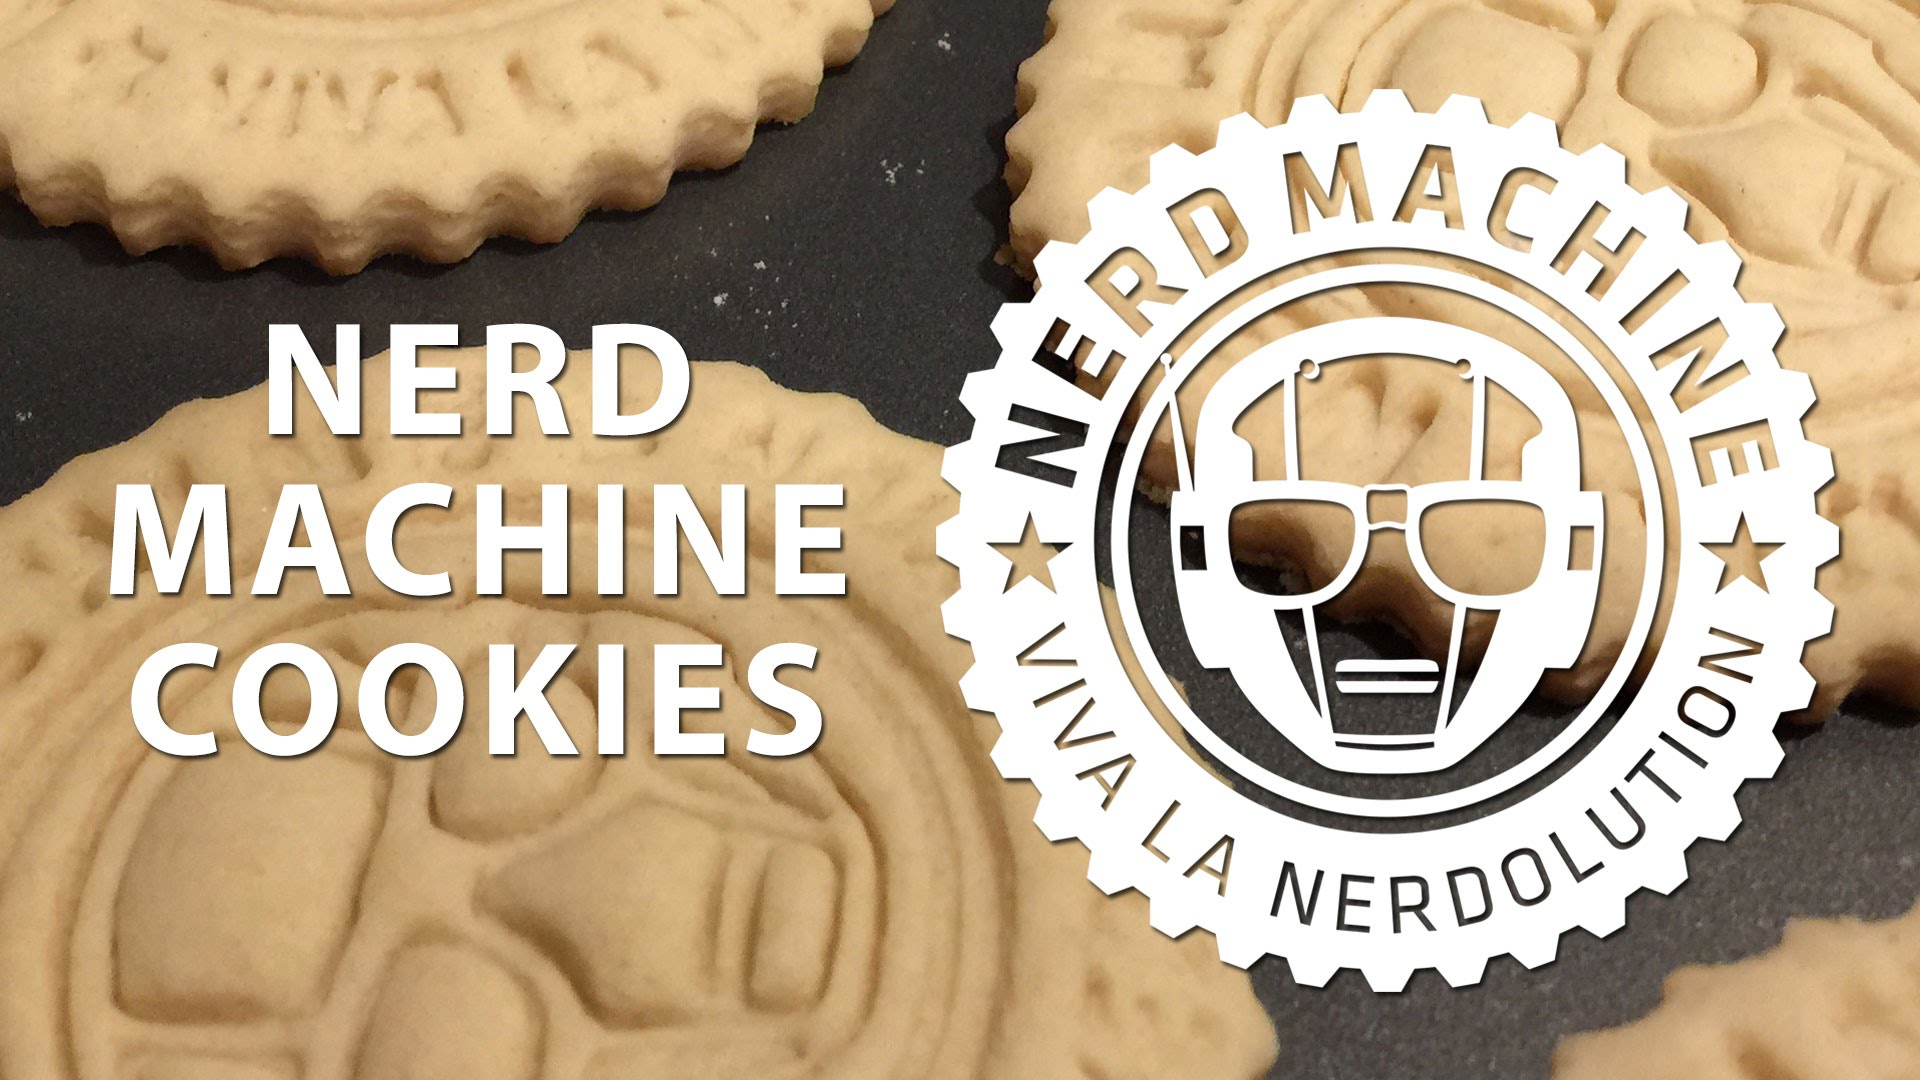 3D Printed Nerd Machine cookie cutter / tasty cookies!